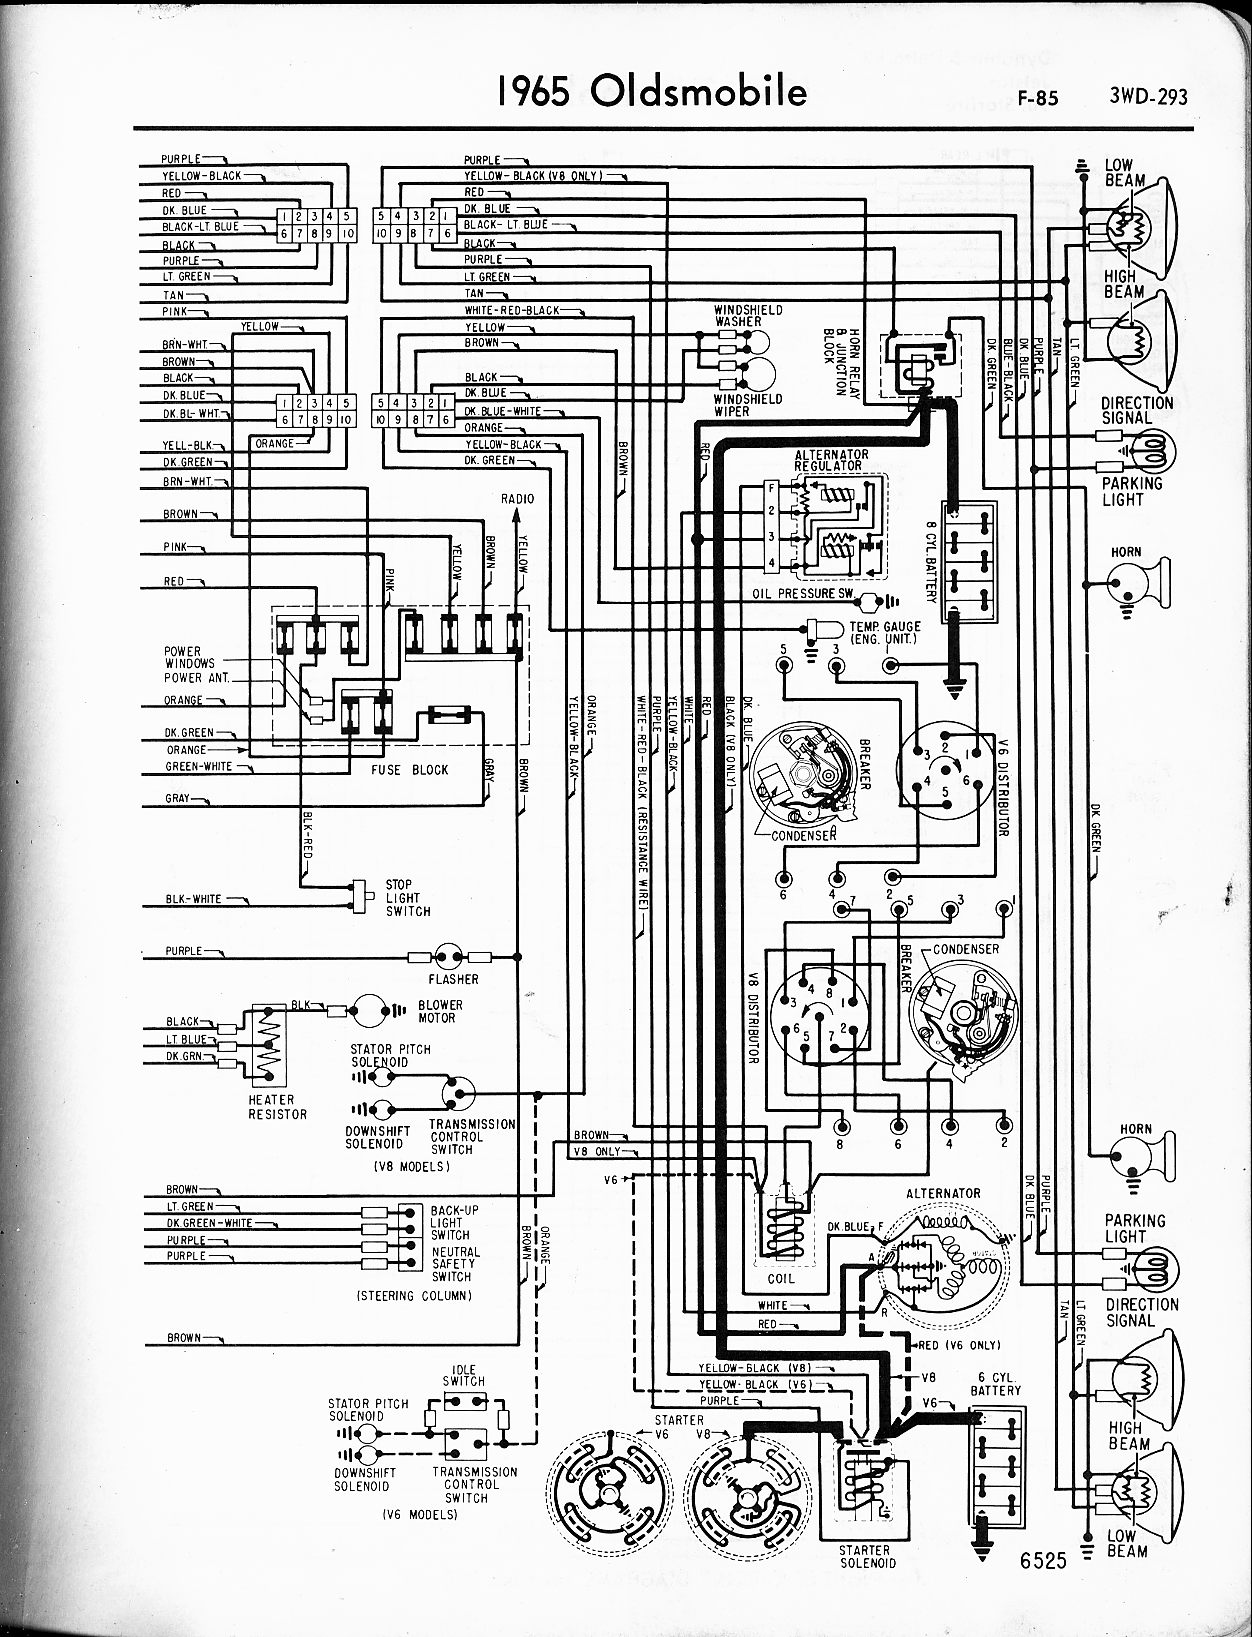 MWire5765 293 oldsmobile wiring diagrams the old car manual project  at crackthecode.co